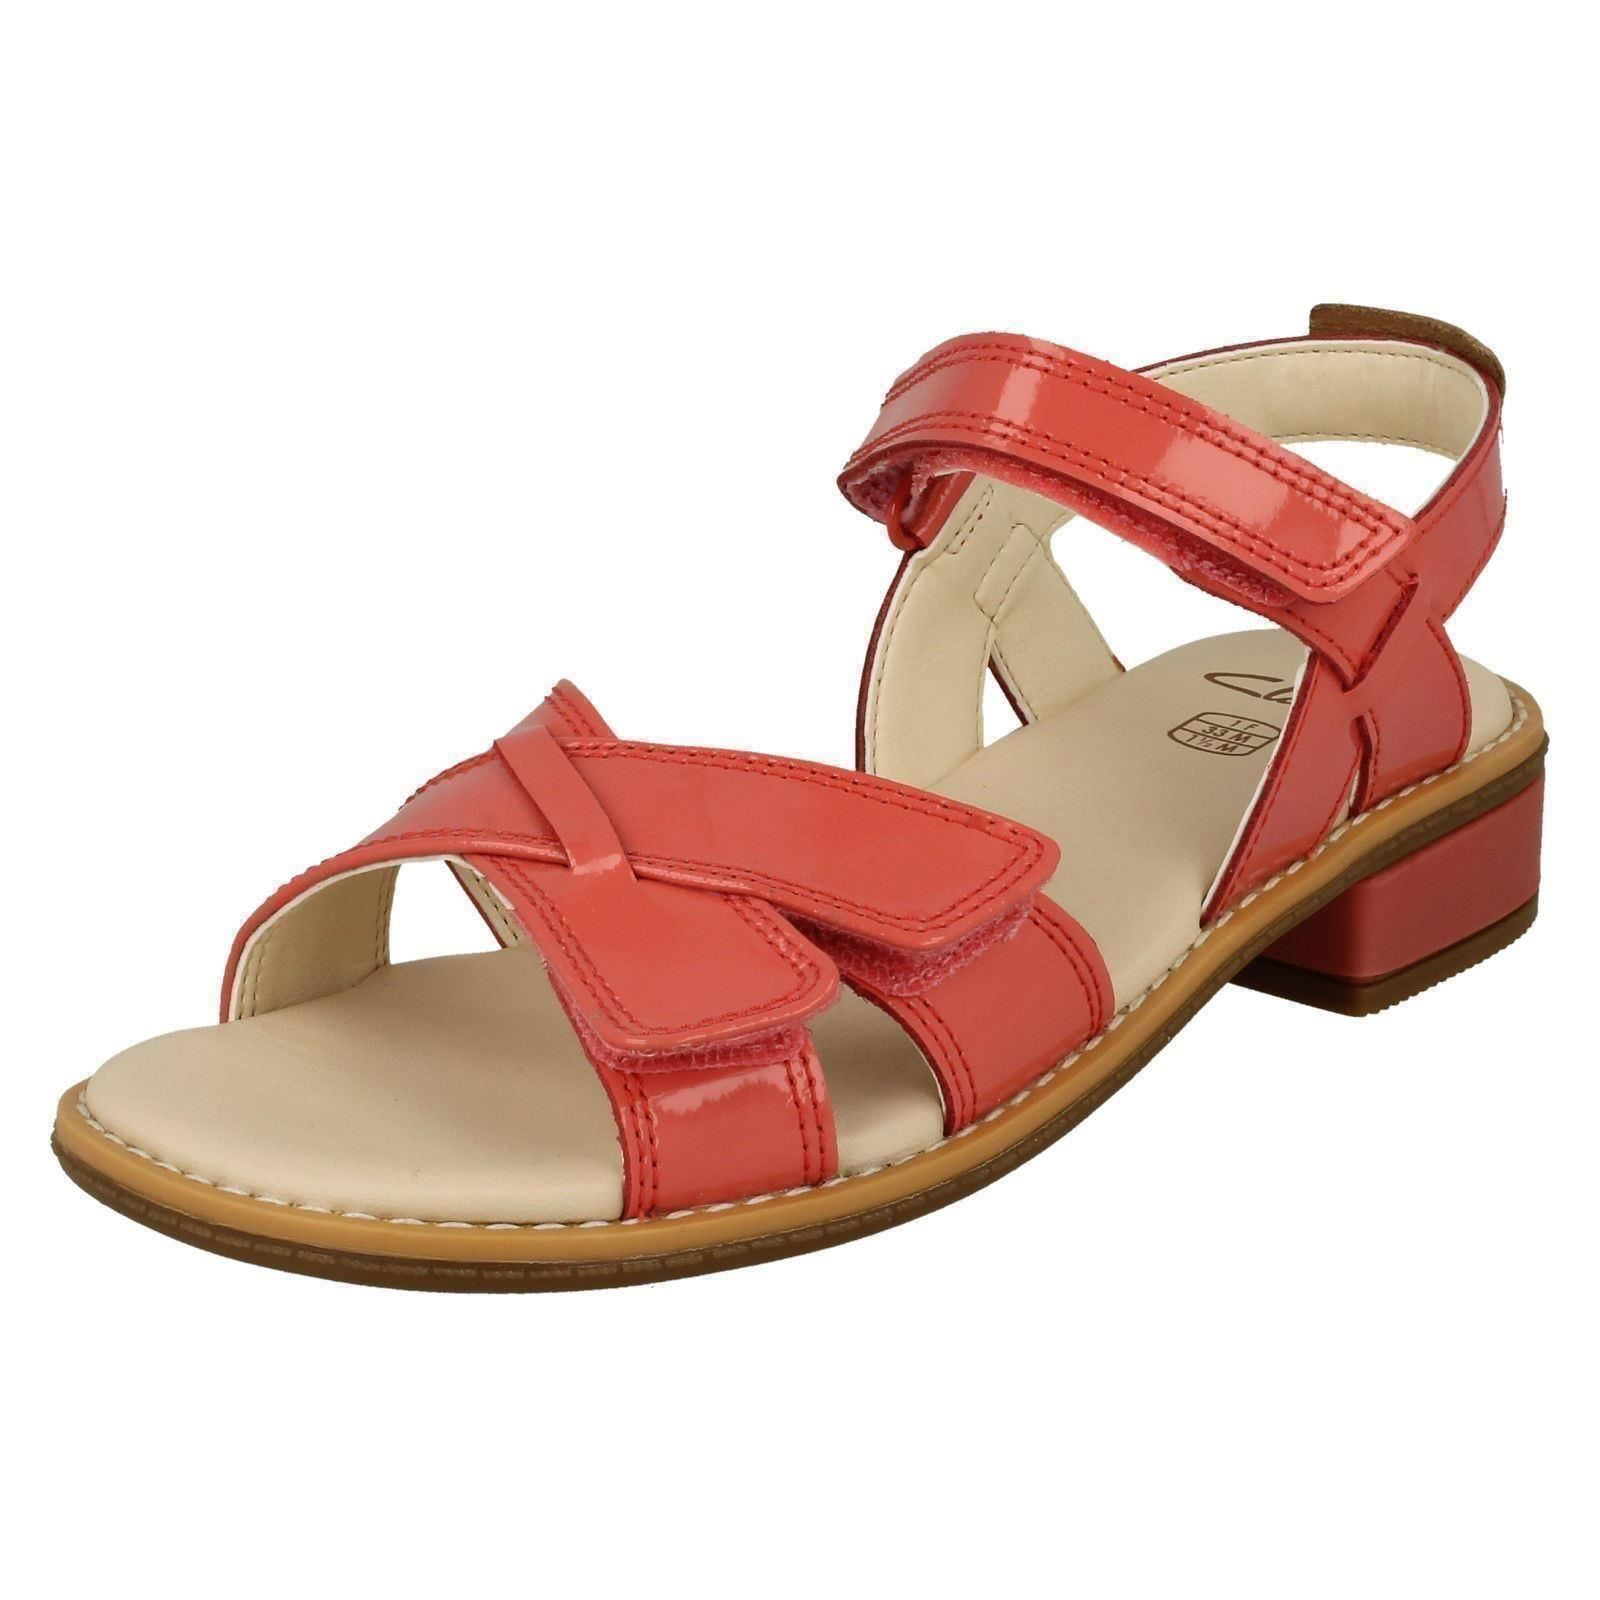 5d44a5d5bd44 Clarks Girls Darcy Charm Patent Leather Strappy Sandals UK 12.5 Kids F  Fitting Coral (pink). About this product. Picture 1 of 8  Picture 2 of 8 ...